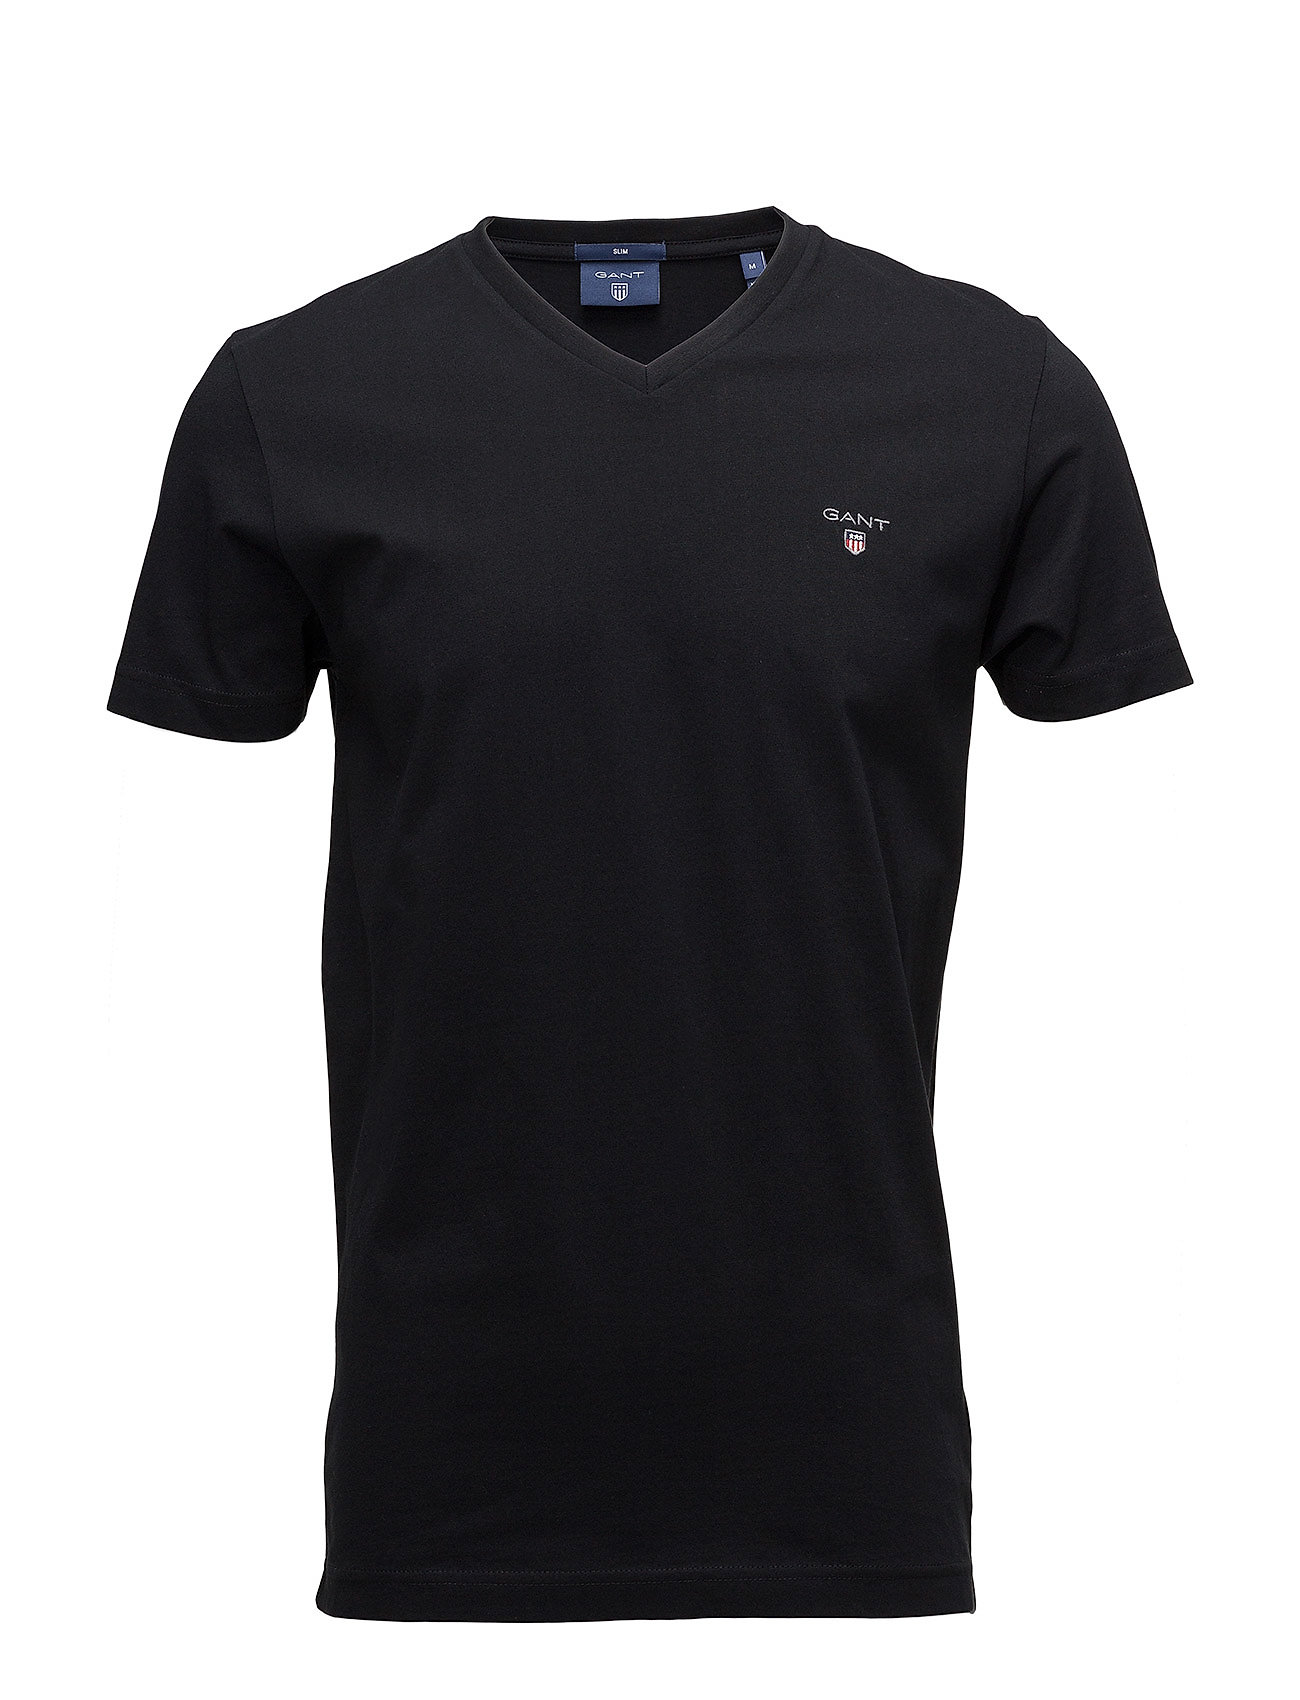 Gant THE ORIGINAL SLIM V-NECK T-SHIRT - BLACK